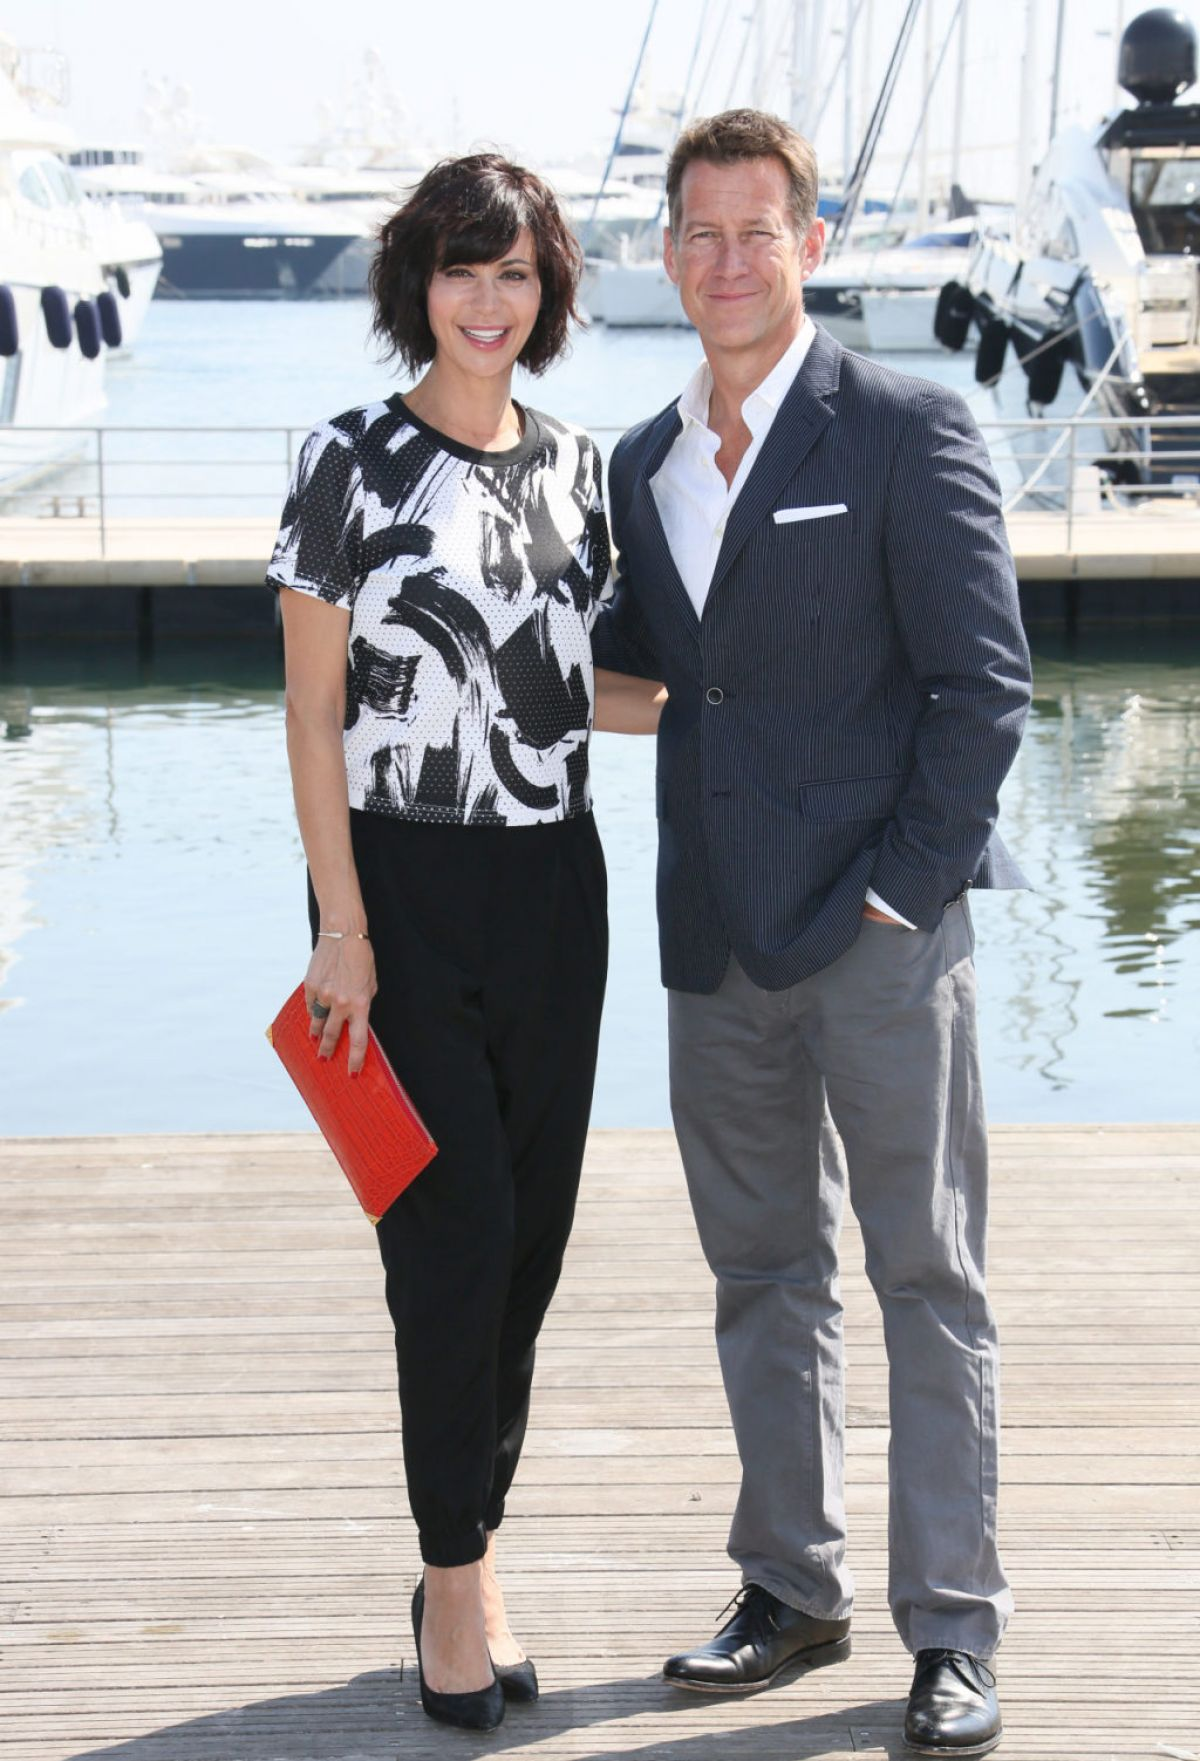 catherine-bell-at-good-witch-photocall-in-cannes_7.jpg